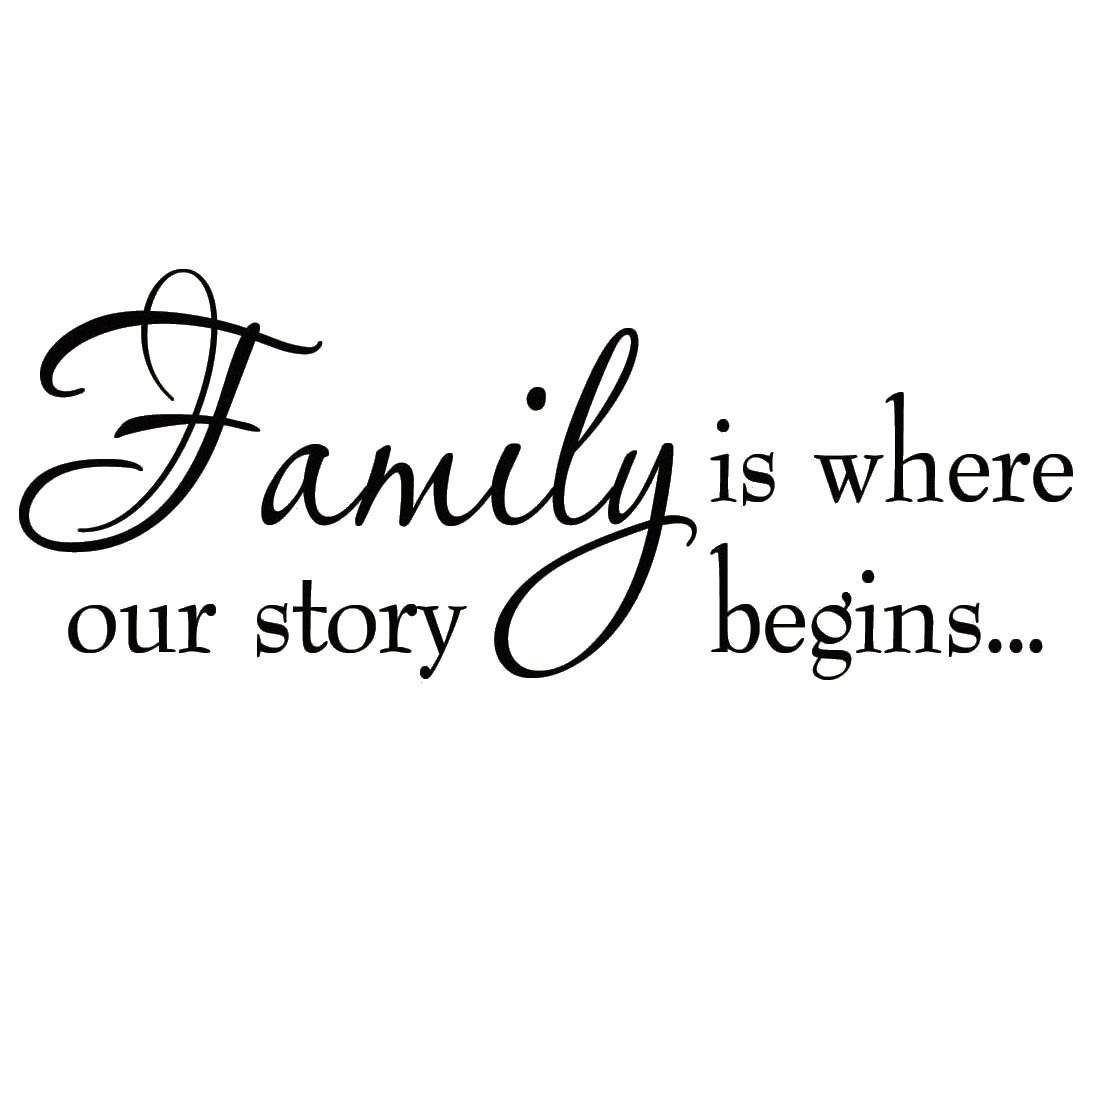 VWAQ Family Is Where Our Story Begins Family Wall Decals Inspirational Quotes Home Decor  sc 1 st  Walmart & VWAQ Family Is Where Our Story Begins Family Wall Decals ...